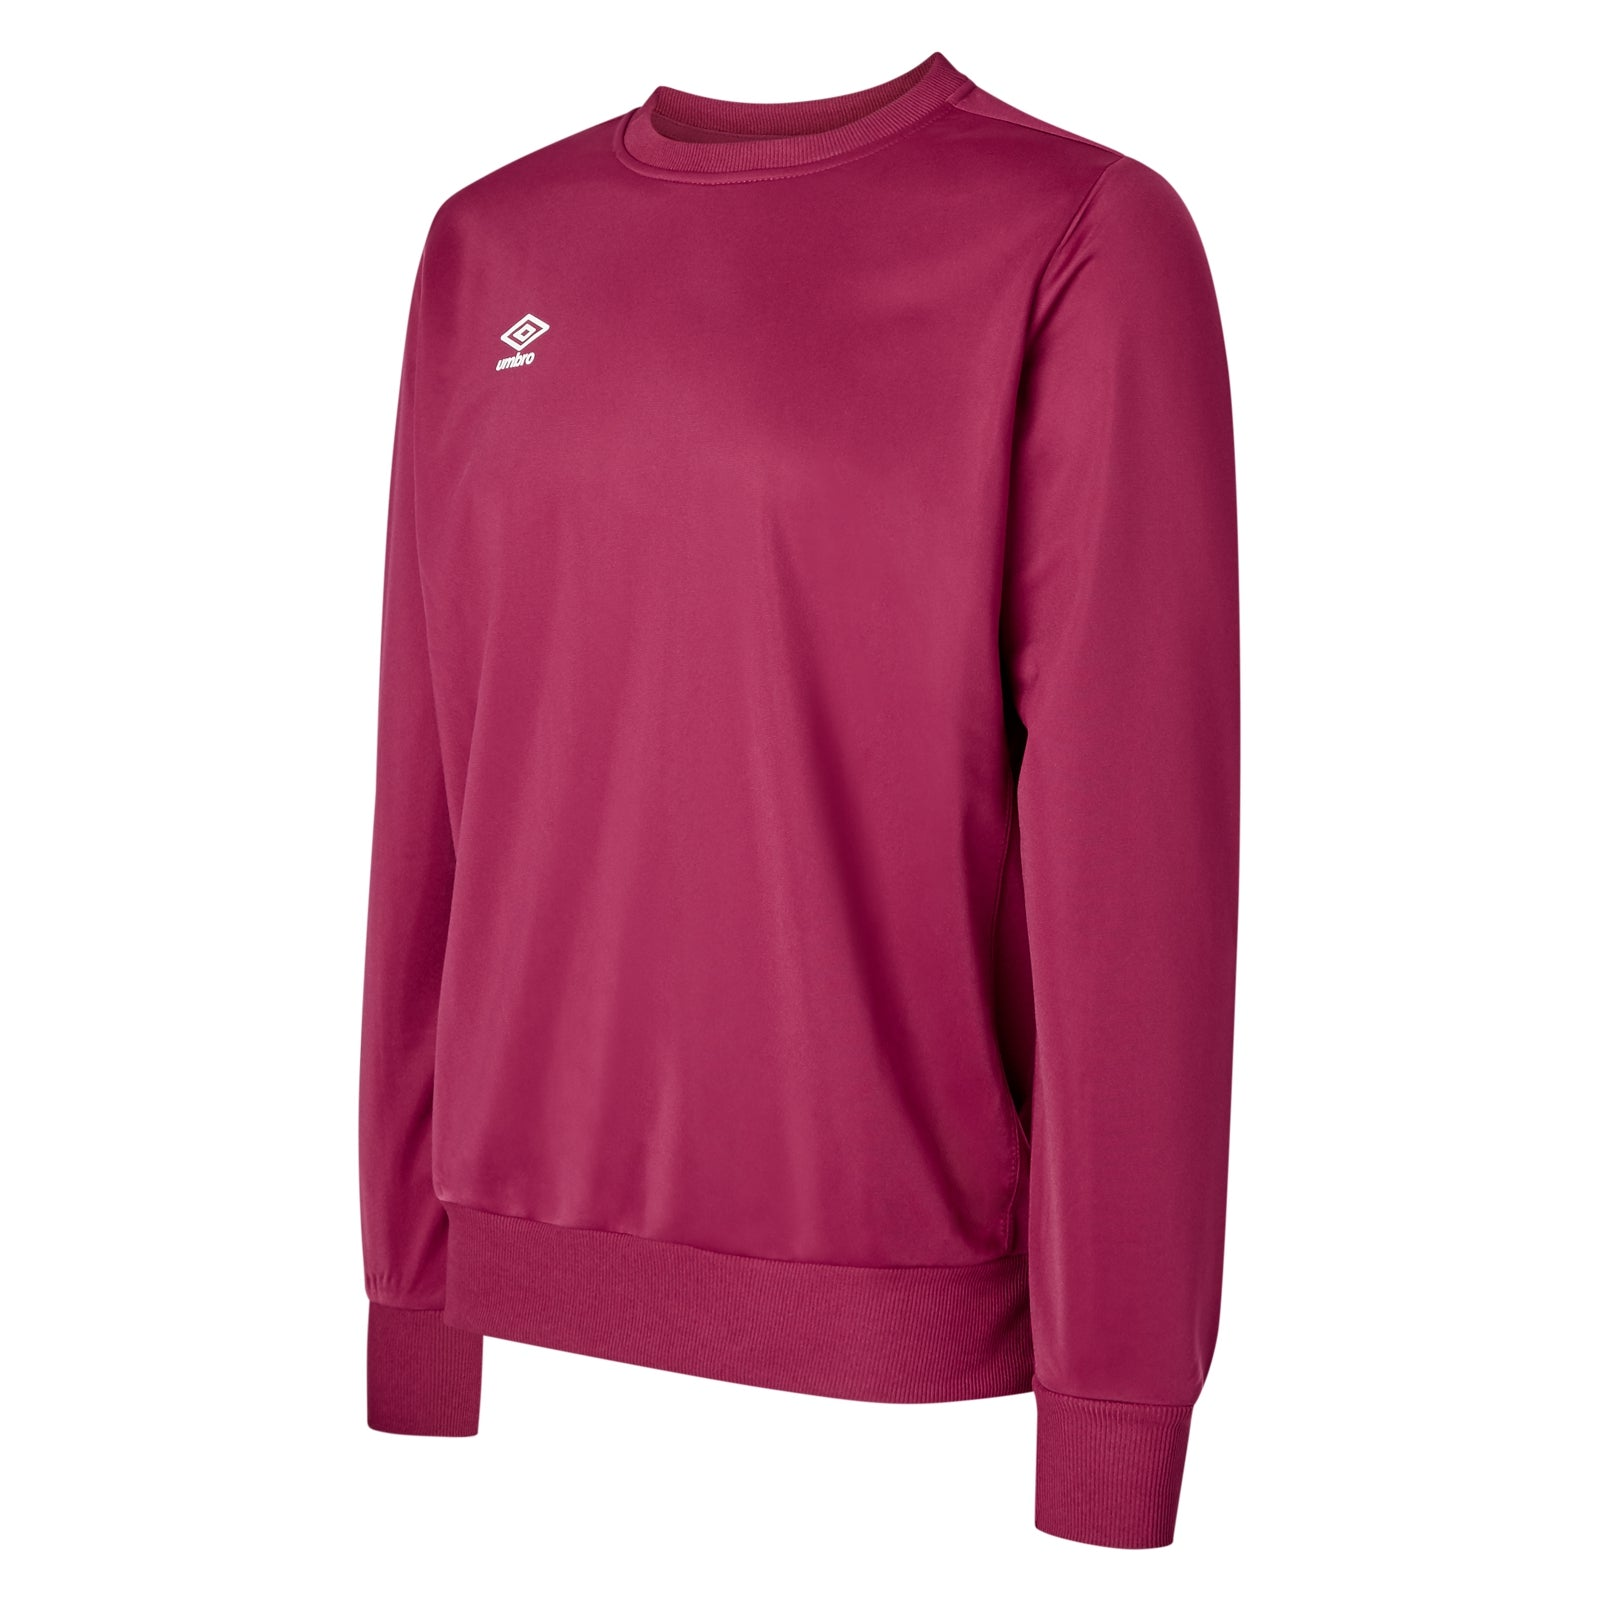 Umbro club Essential poly sweat in new claret with white Diamond logo